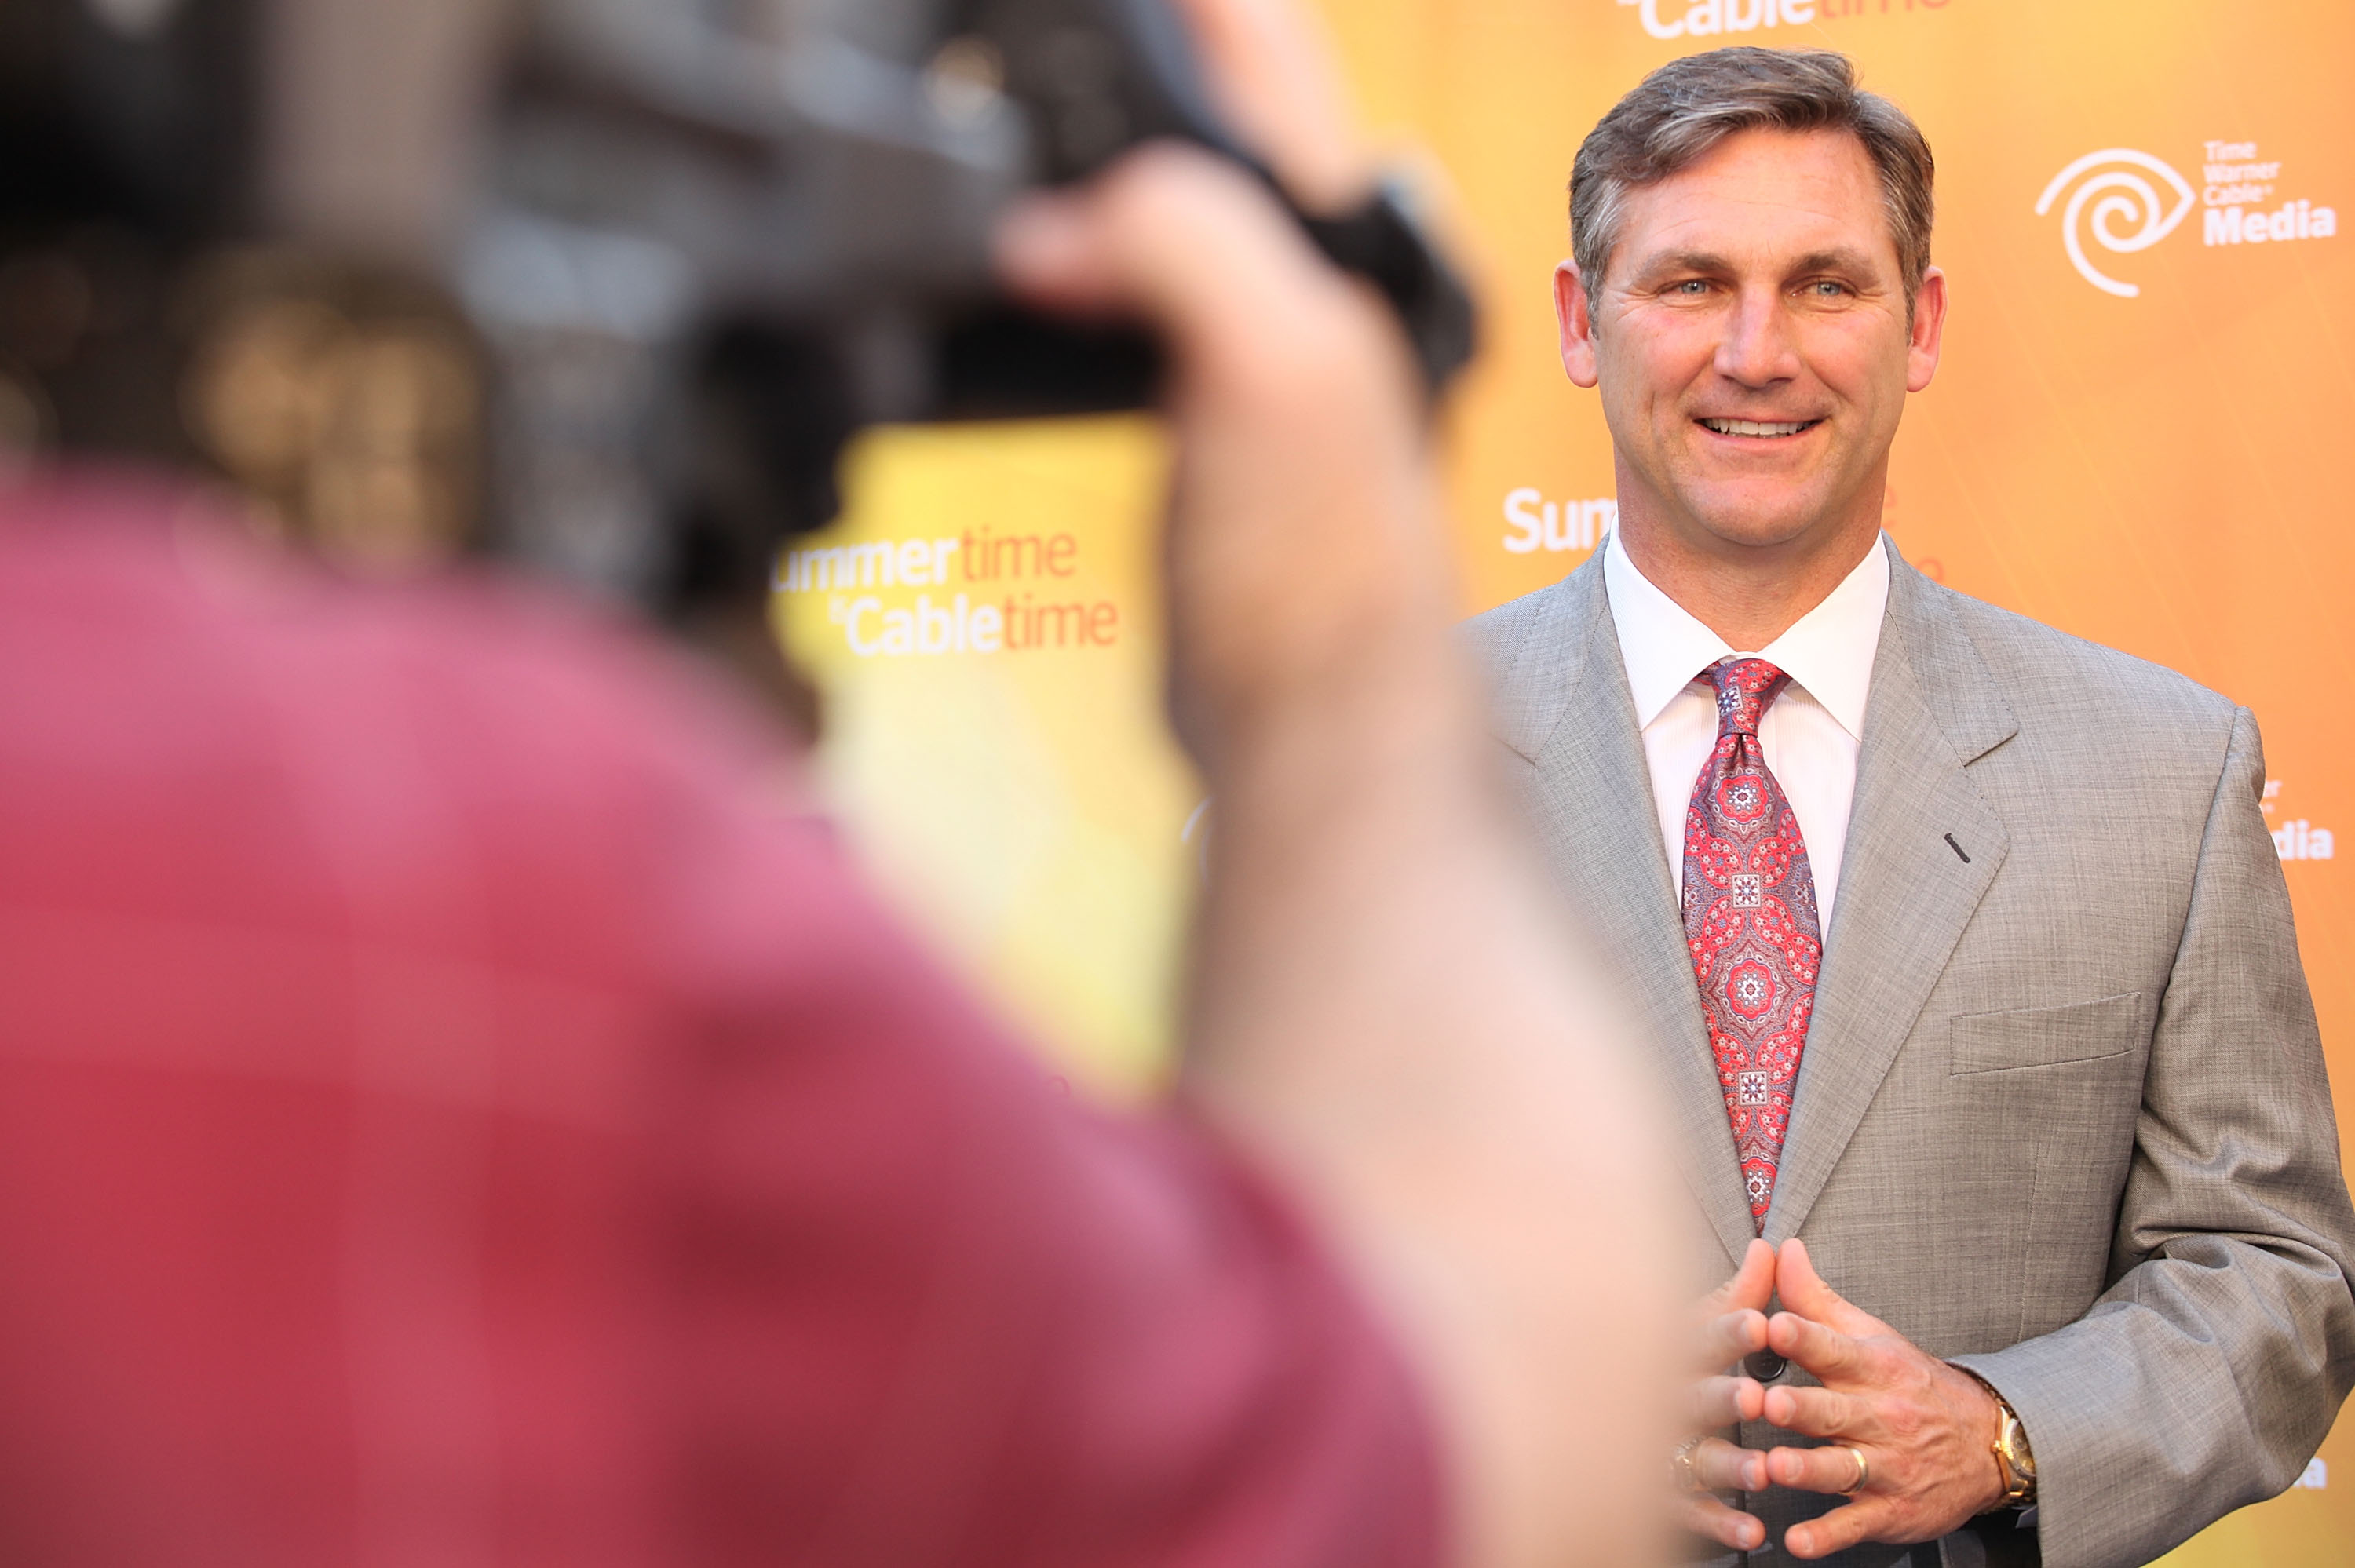 College football analyst Craig James attends the Time Warner Cable Media Upfront Event